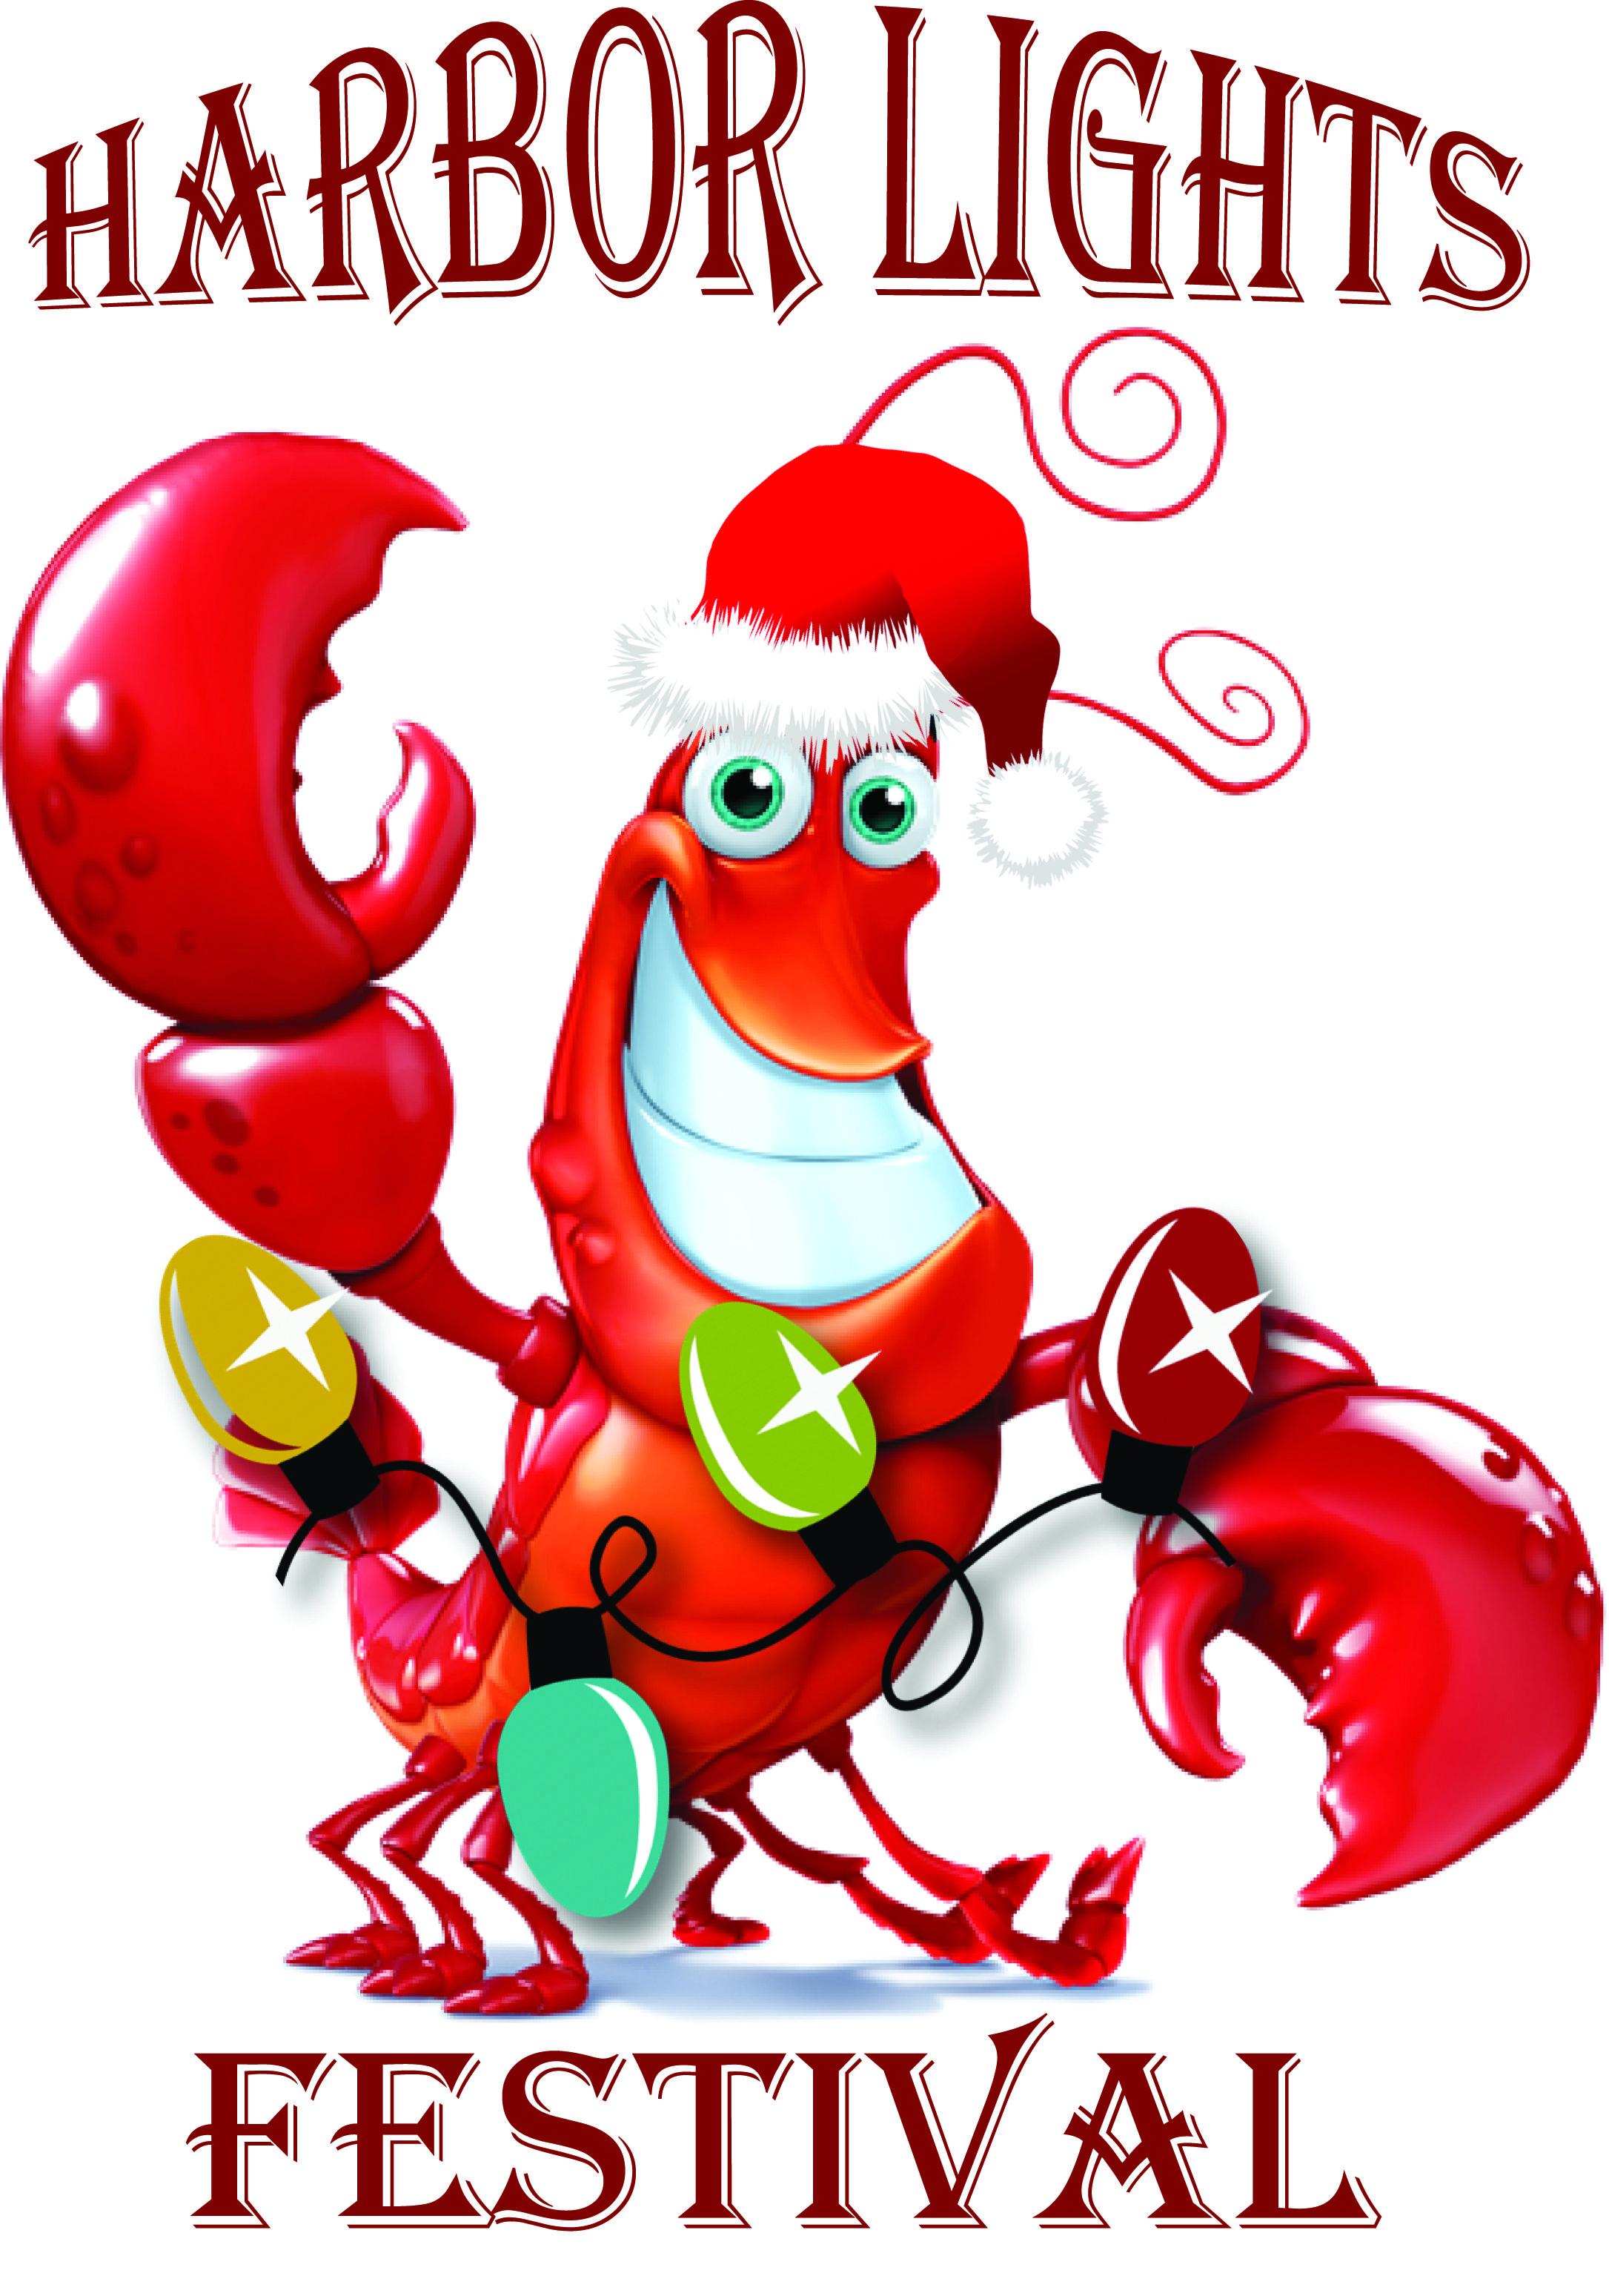 Holiday Events in Midcoast Maine, Dec. 4 8th Harbor